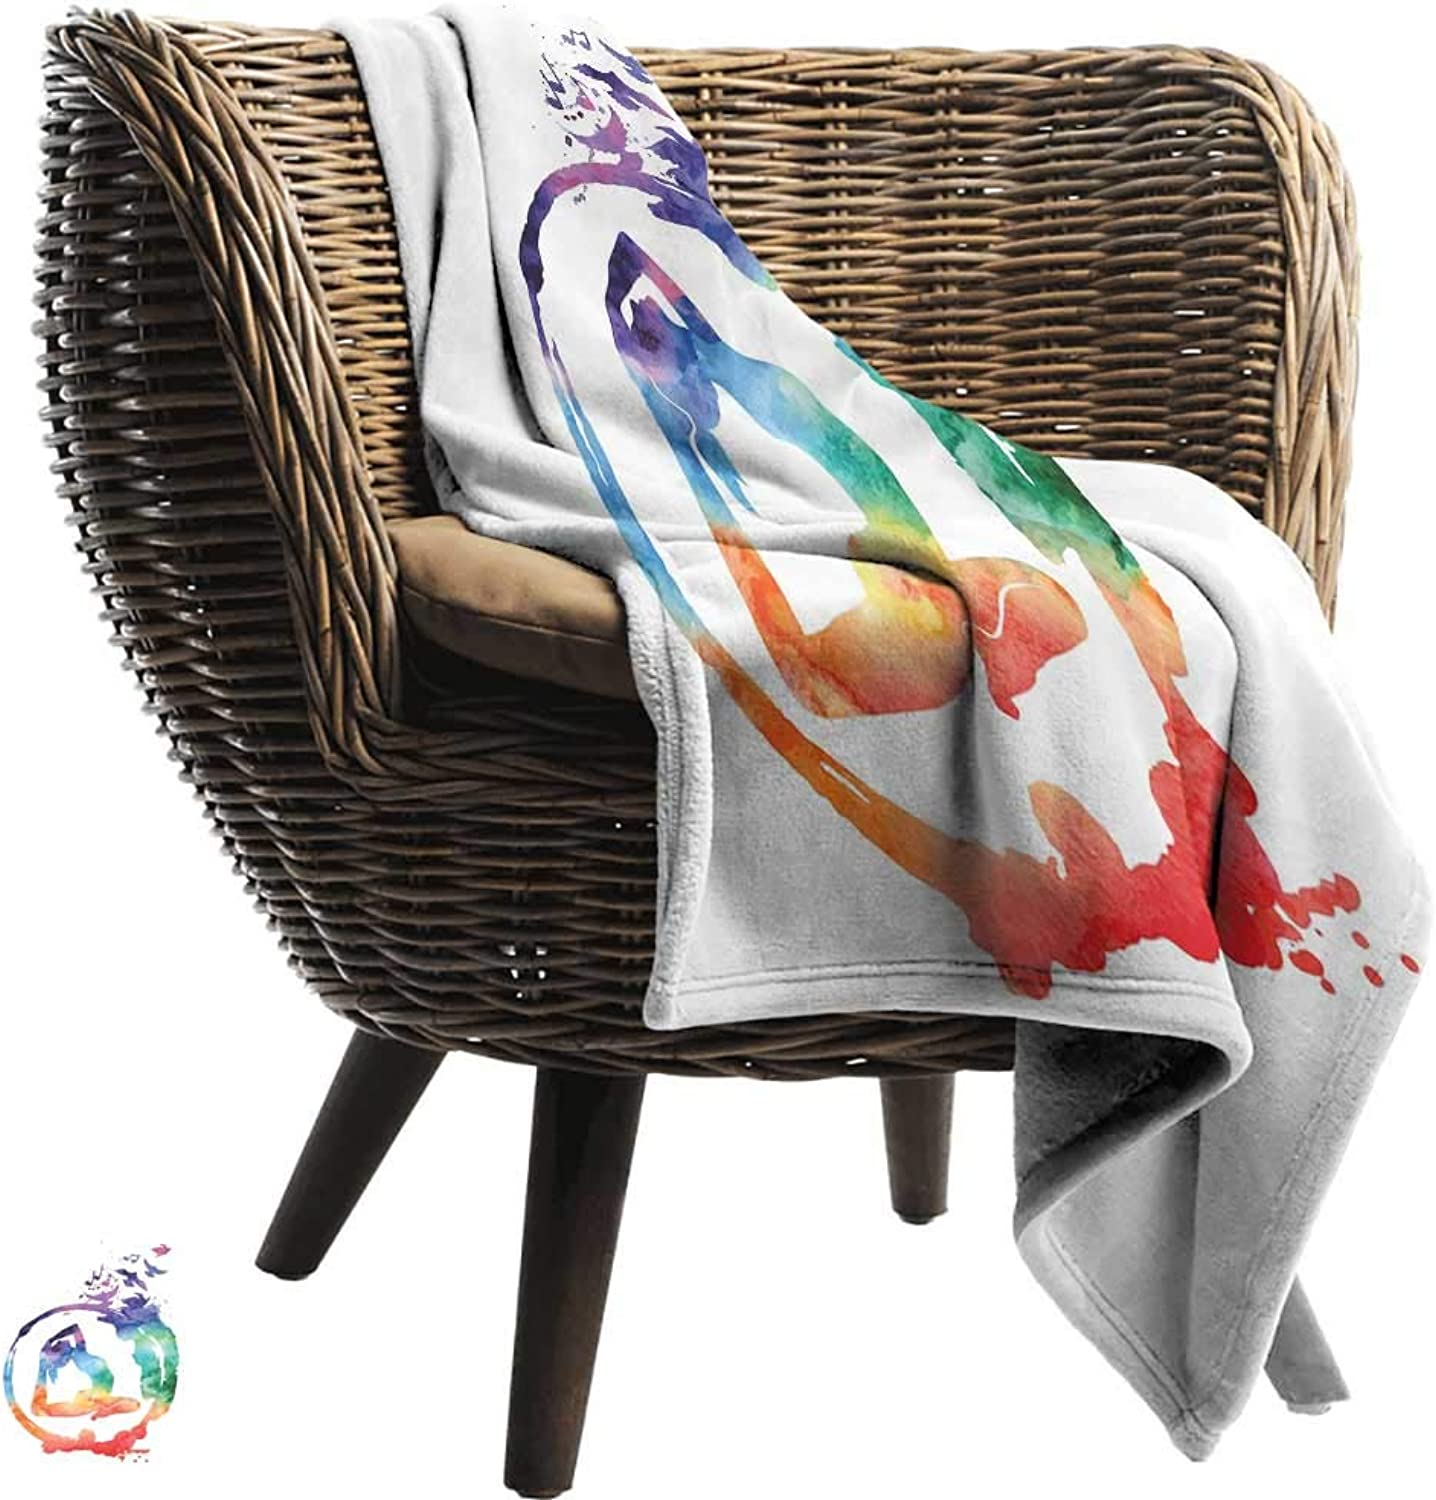 WinfreyDecor Yoga Warm Blanket Rainbow Watercolors Zen Symbol Yoga Pose Free Birds and Music Inspiration Spiritual All Season for Couch or Bed 60  Wx51 L Multicolor